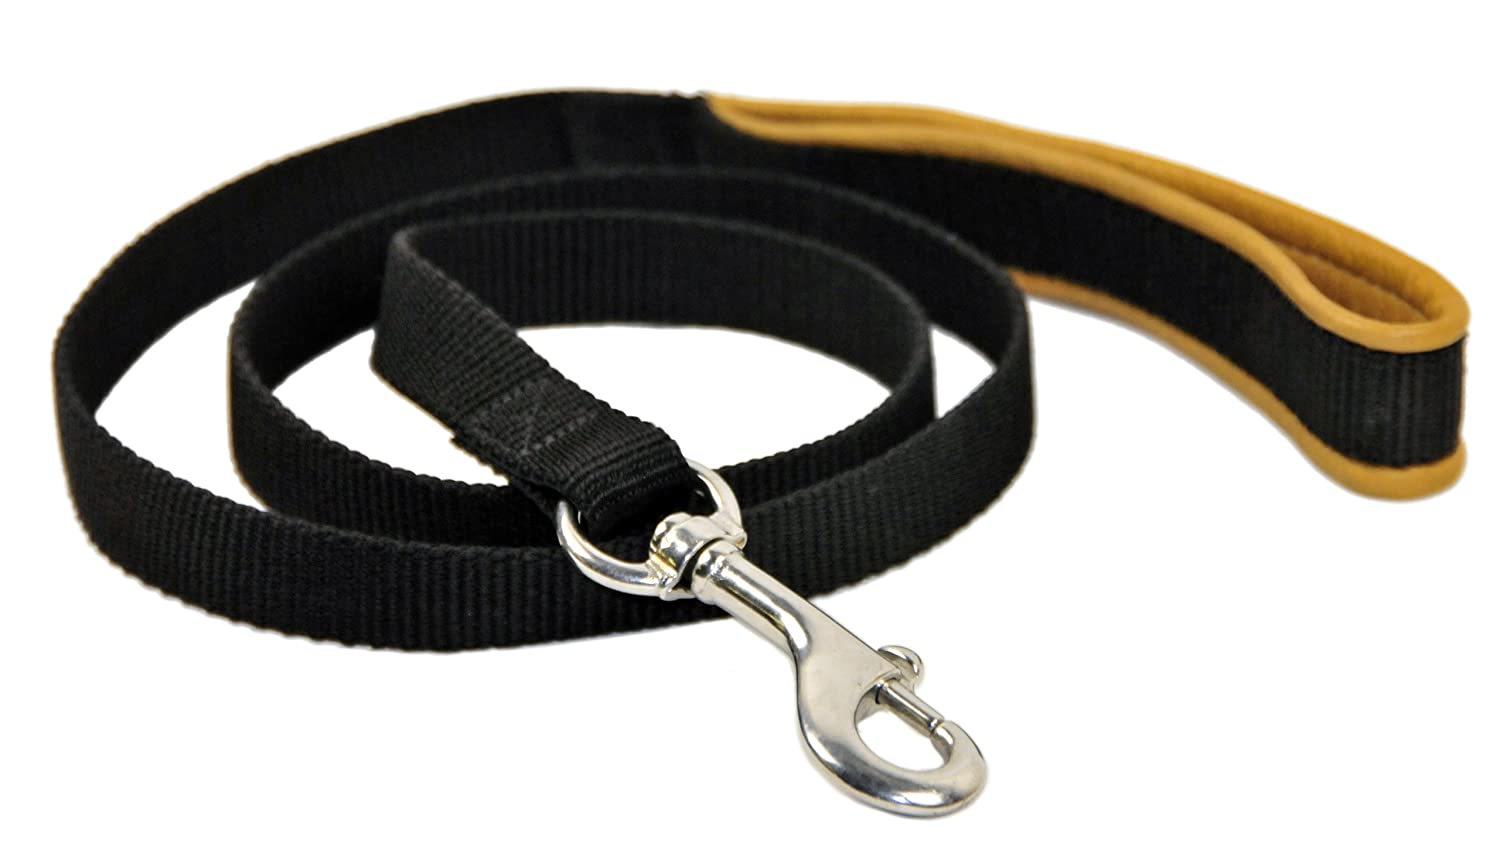 Dean & Tyler Padded Puppy Double Ply Nylon Dog Leash with Brown Padded Handle and Stainless Steel Hardware, 3-Feet by 3 4-Inch, Black